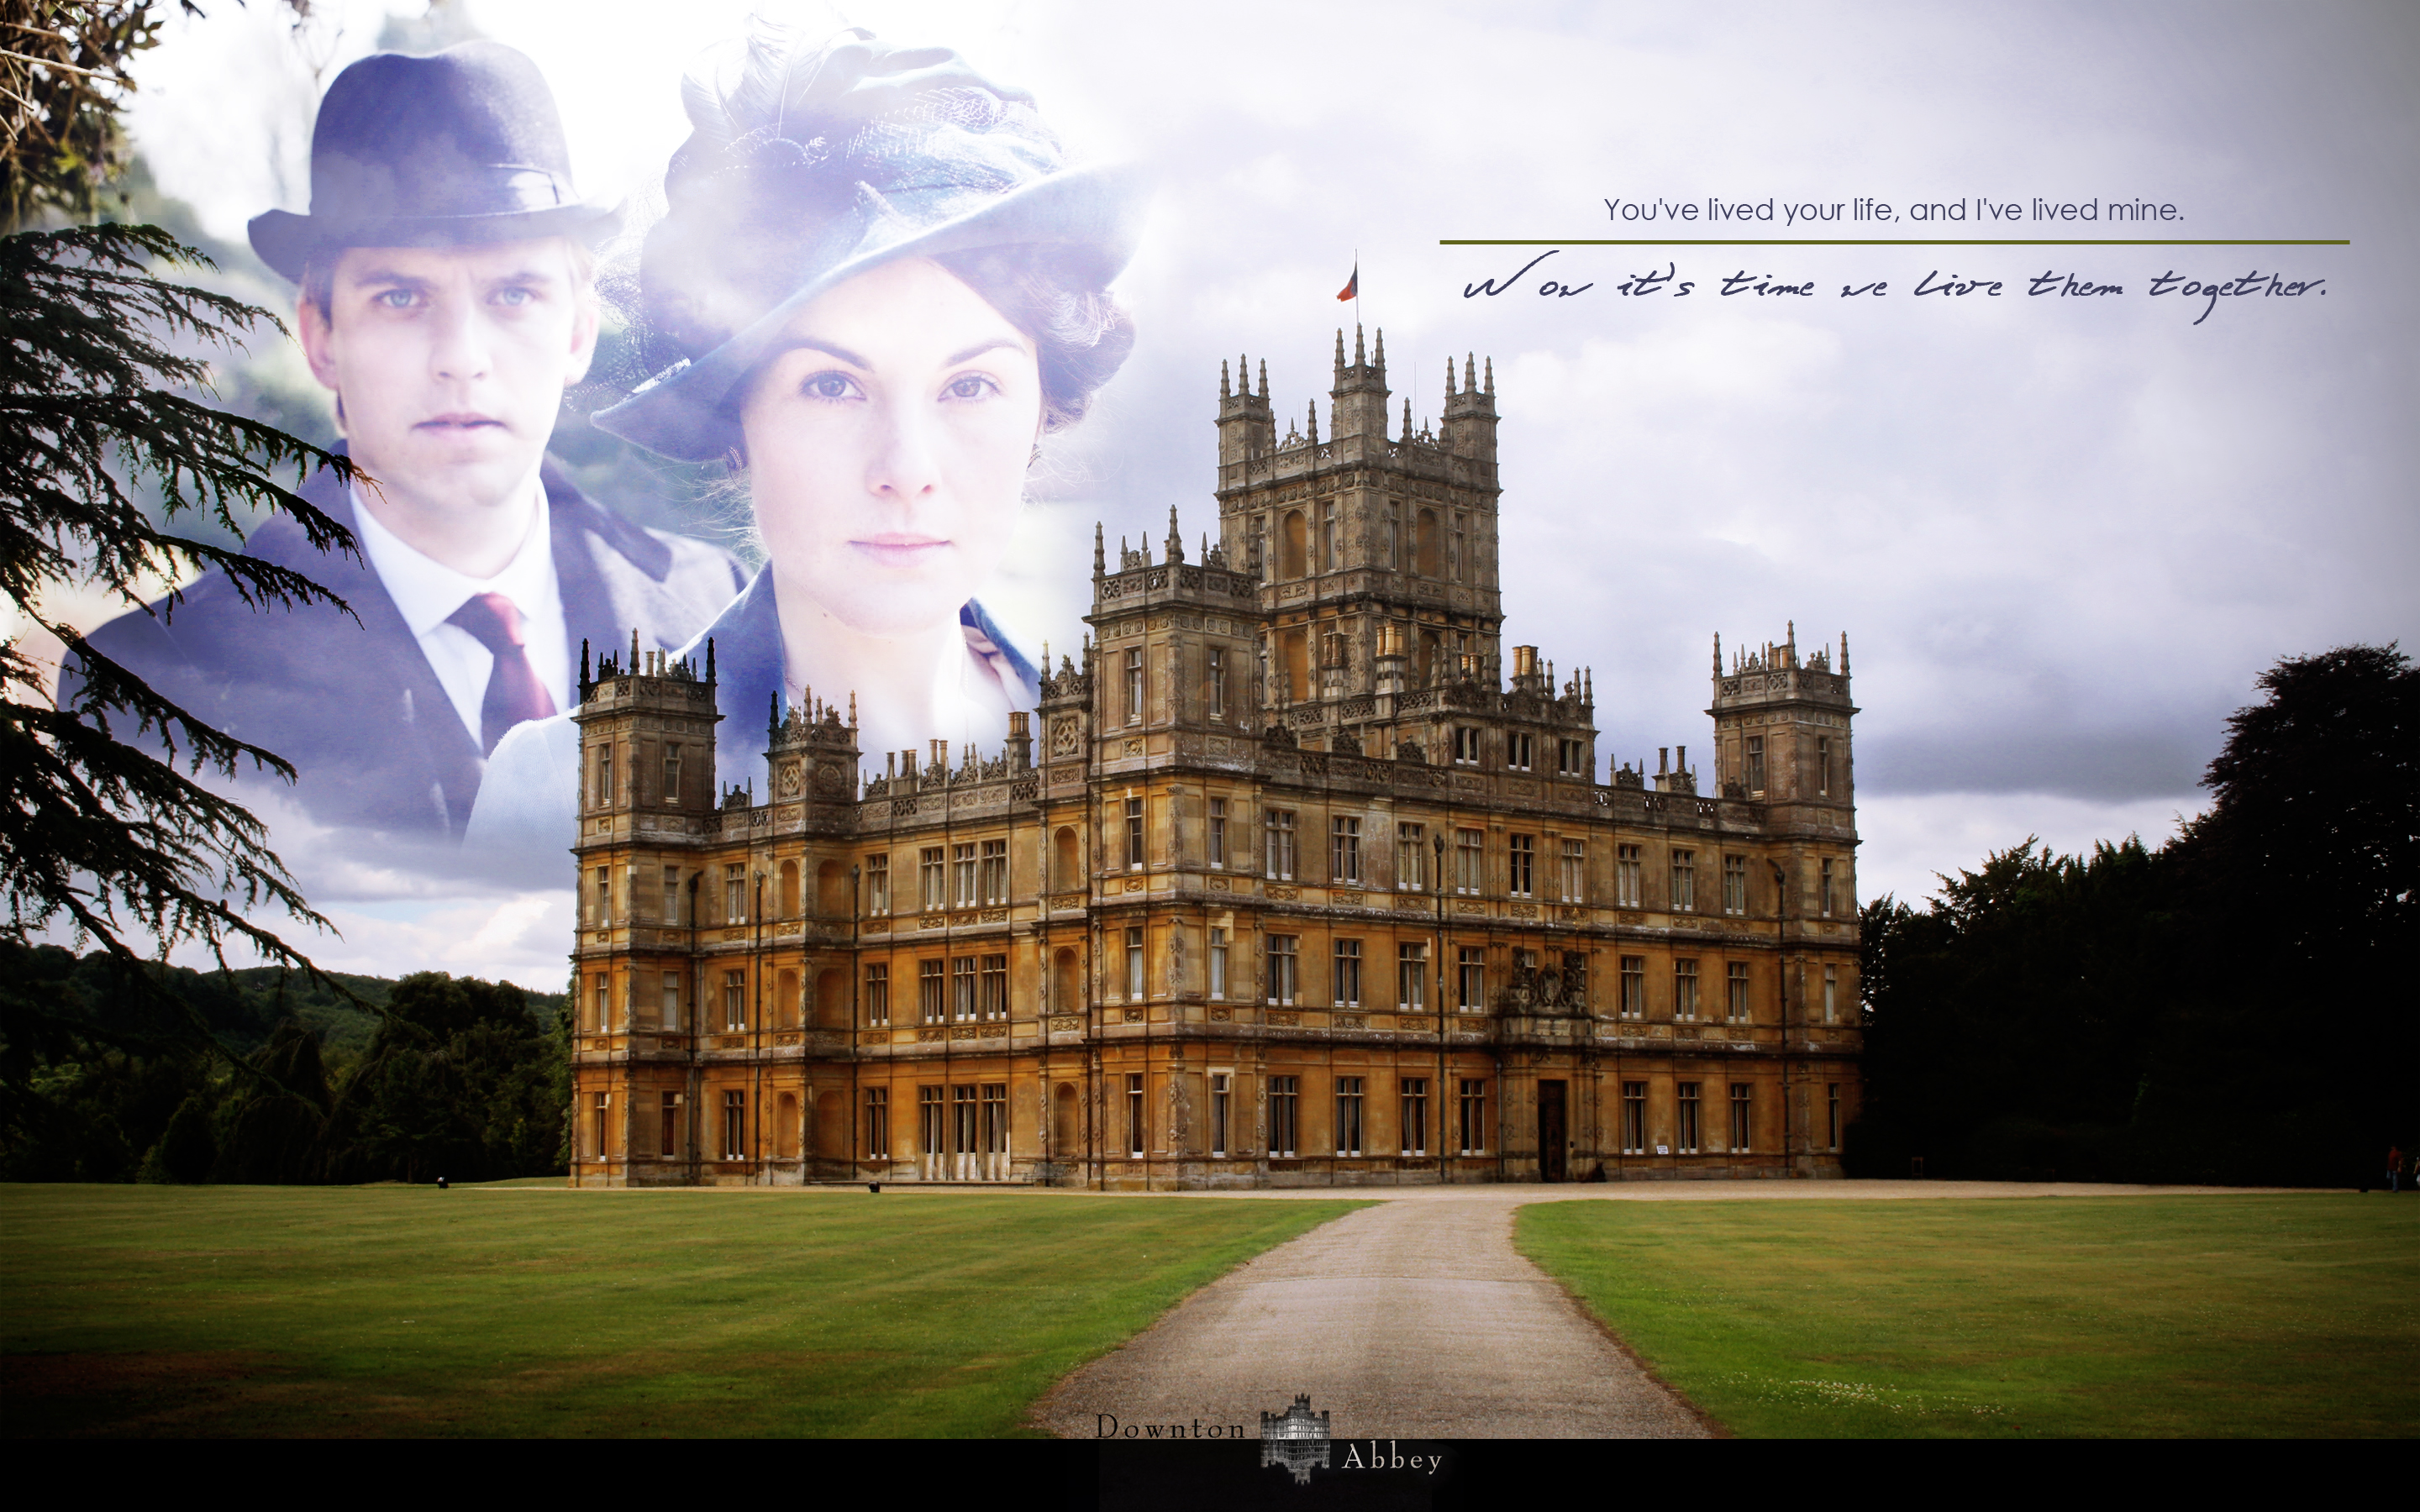 26 Downton Abbey HD Widescreen Background Wallpapers GsFDcYcom 2880x1800